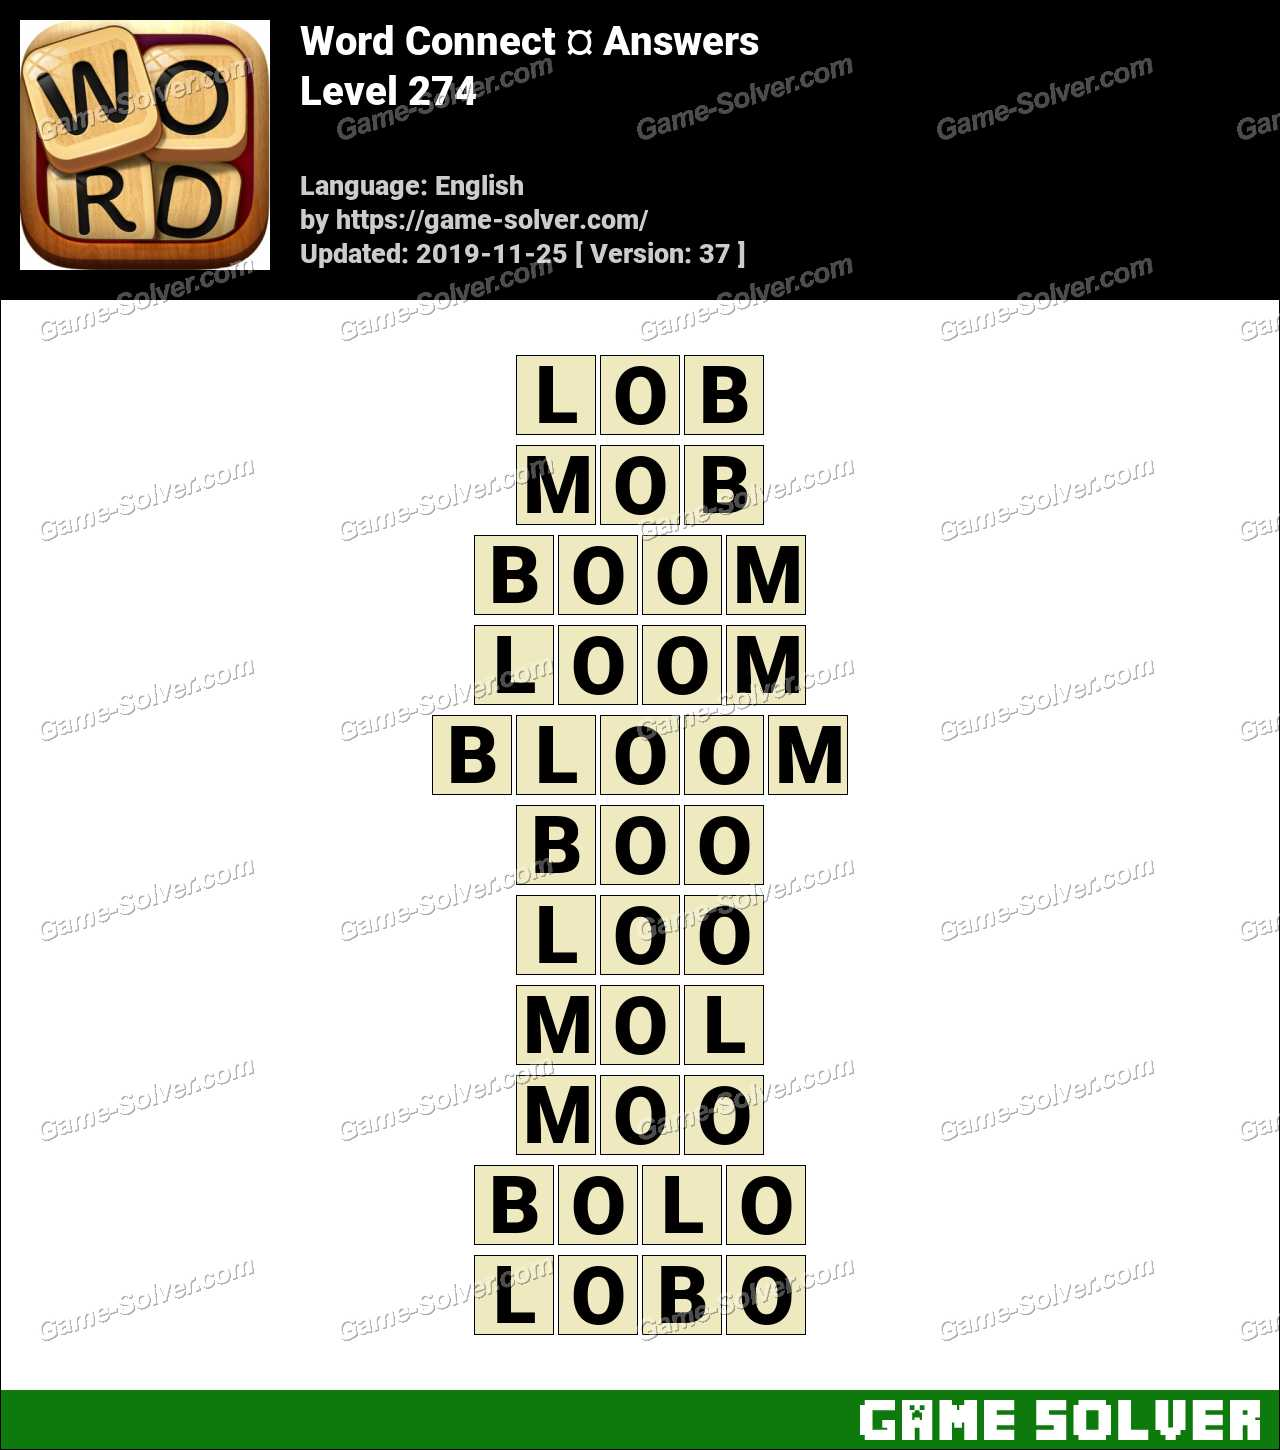 Word Connect Level 274 Answers